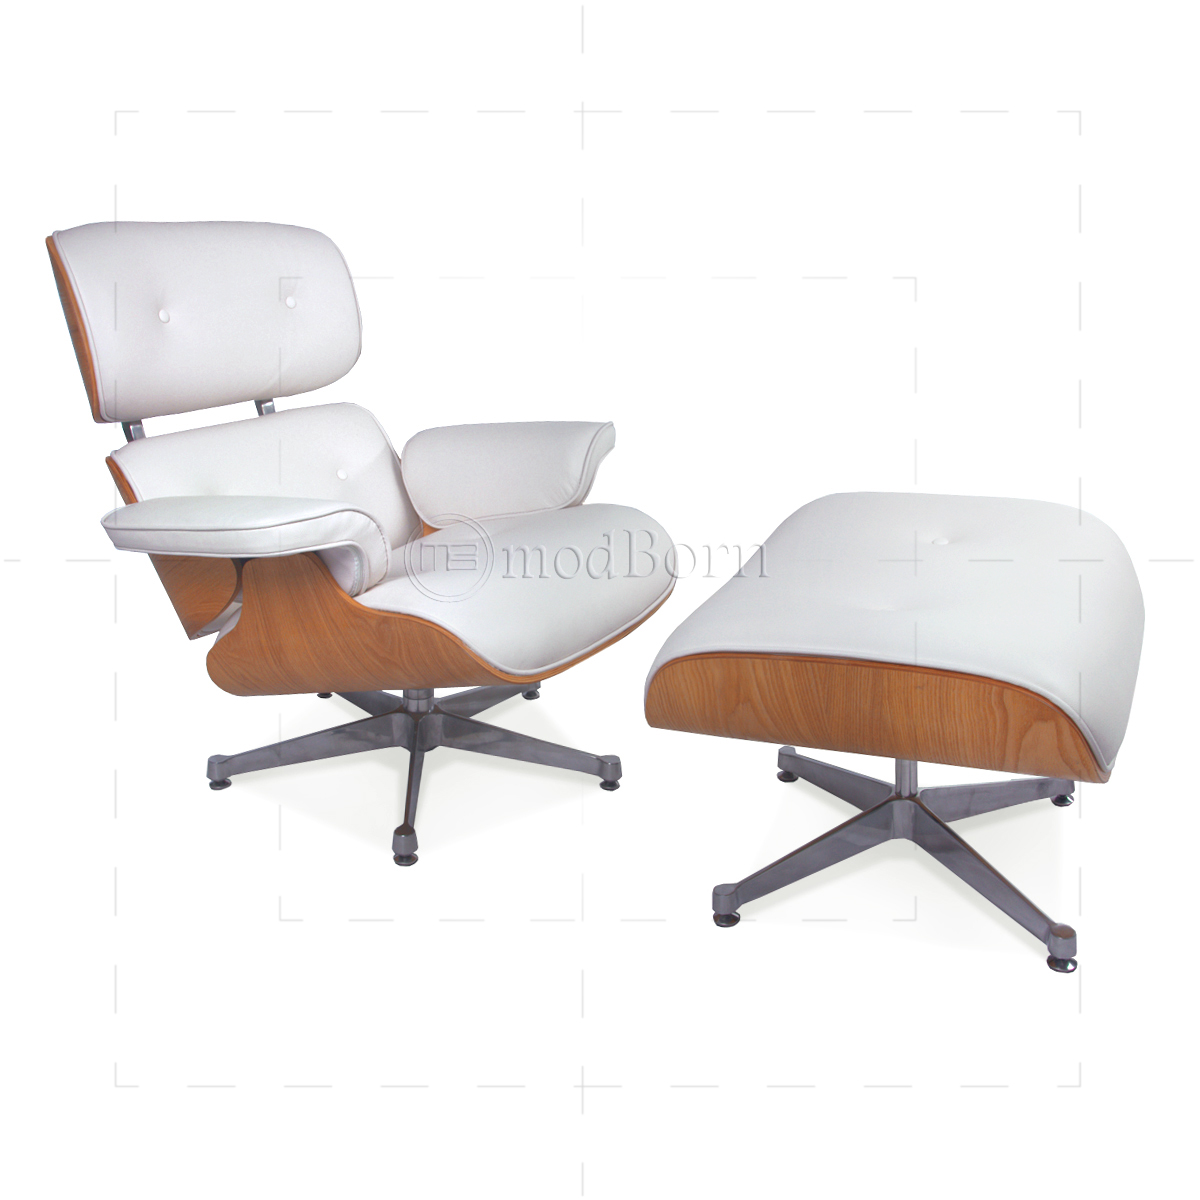 white leather chair and footstool eames style lounge chair and ottoman white leather oak plywood 21977 | eames lounge chair white fullview 1200x1200